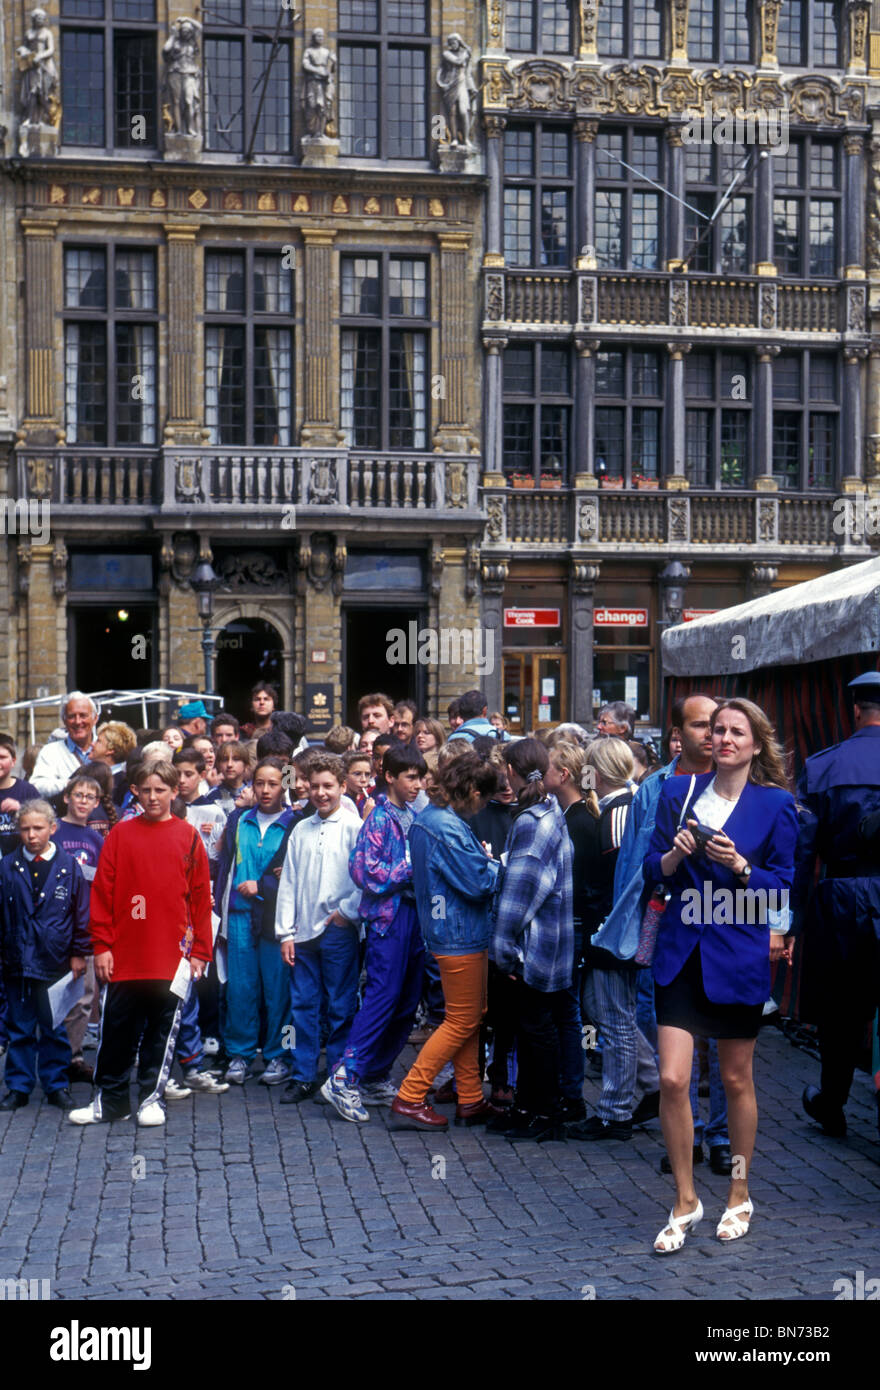 Belgians, Belgian people, students, student field trip, GrandPlace, Grand Place, city of Brussels, Brussels, Brussels - Stock Image